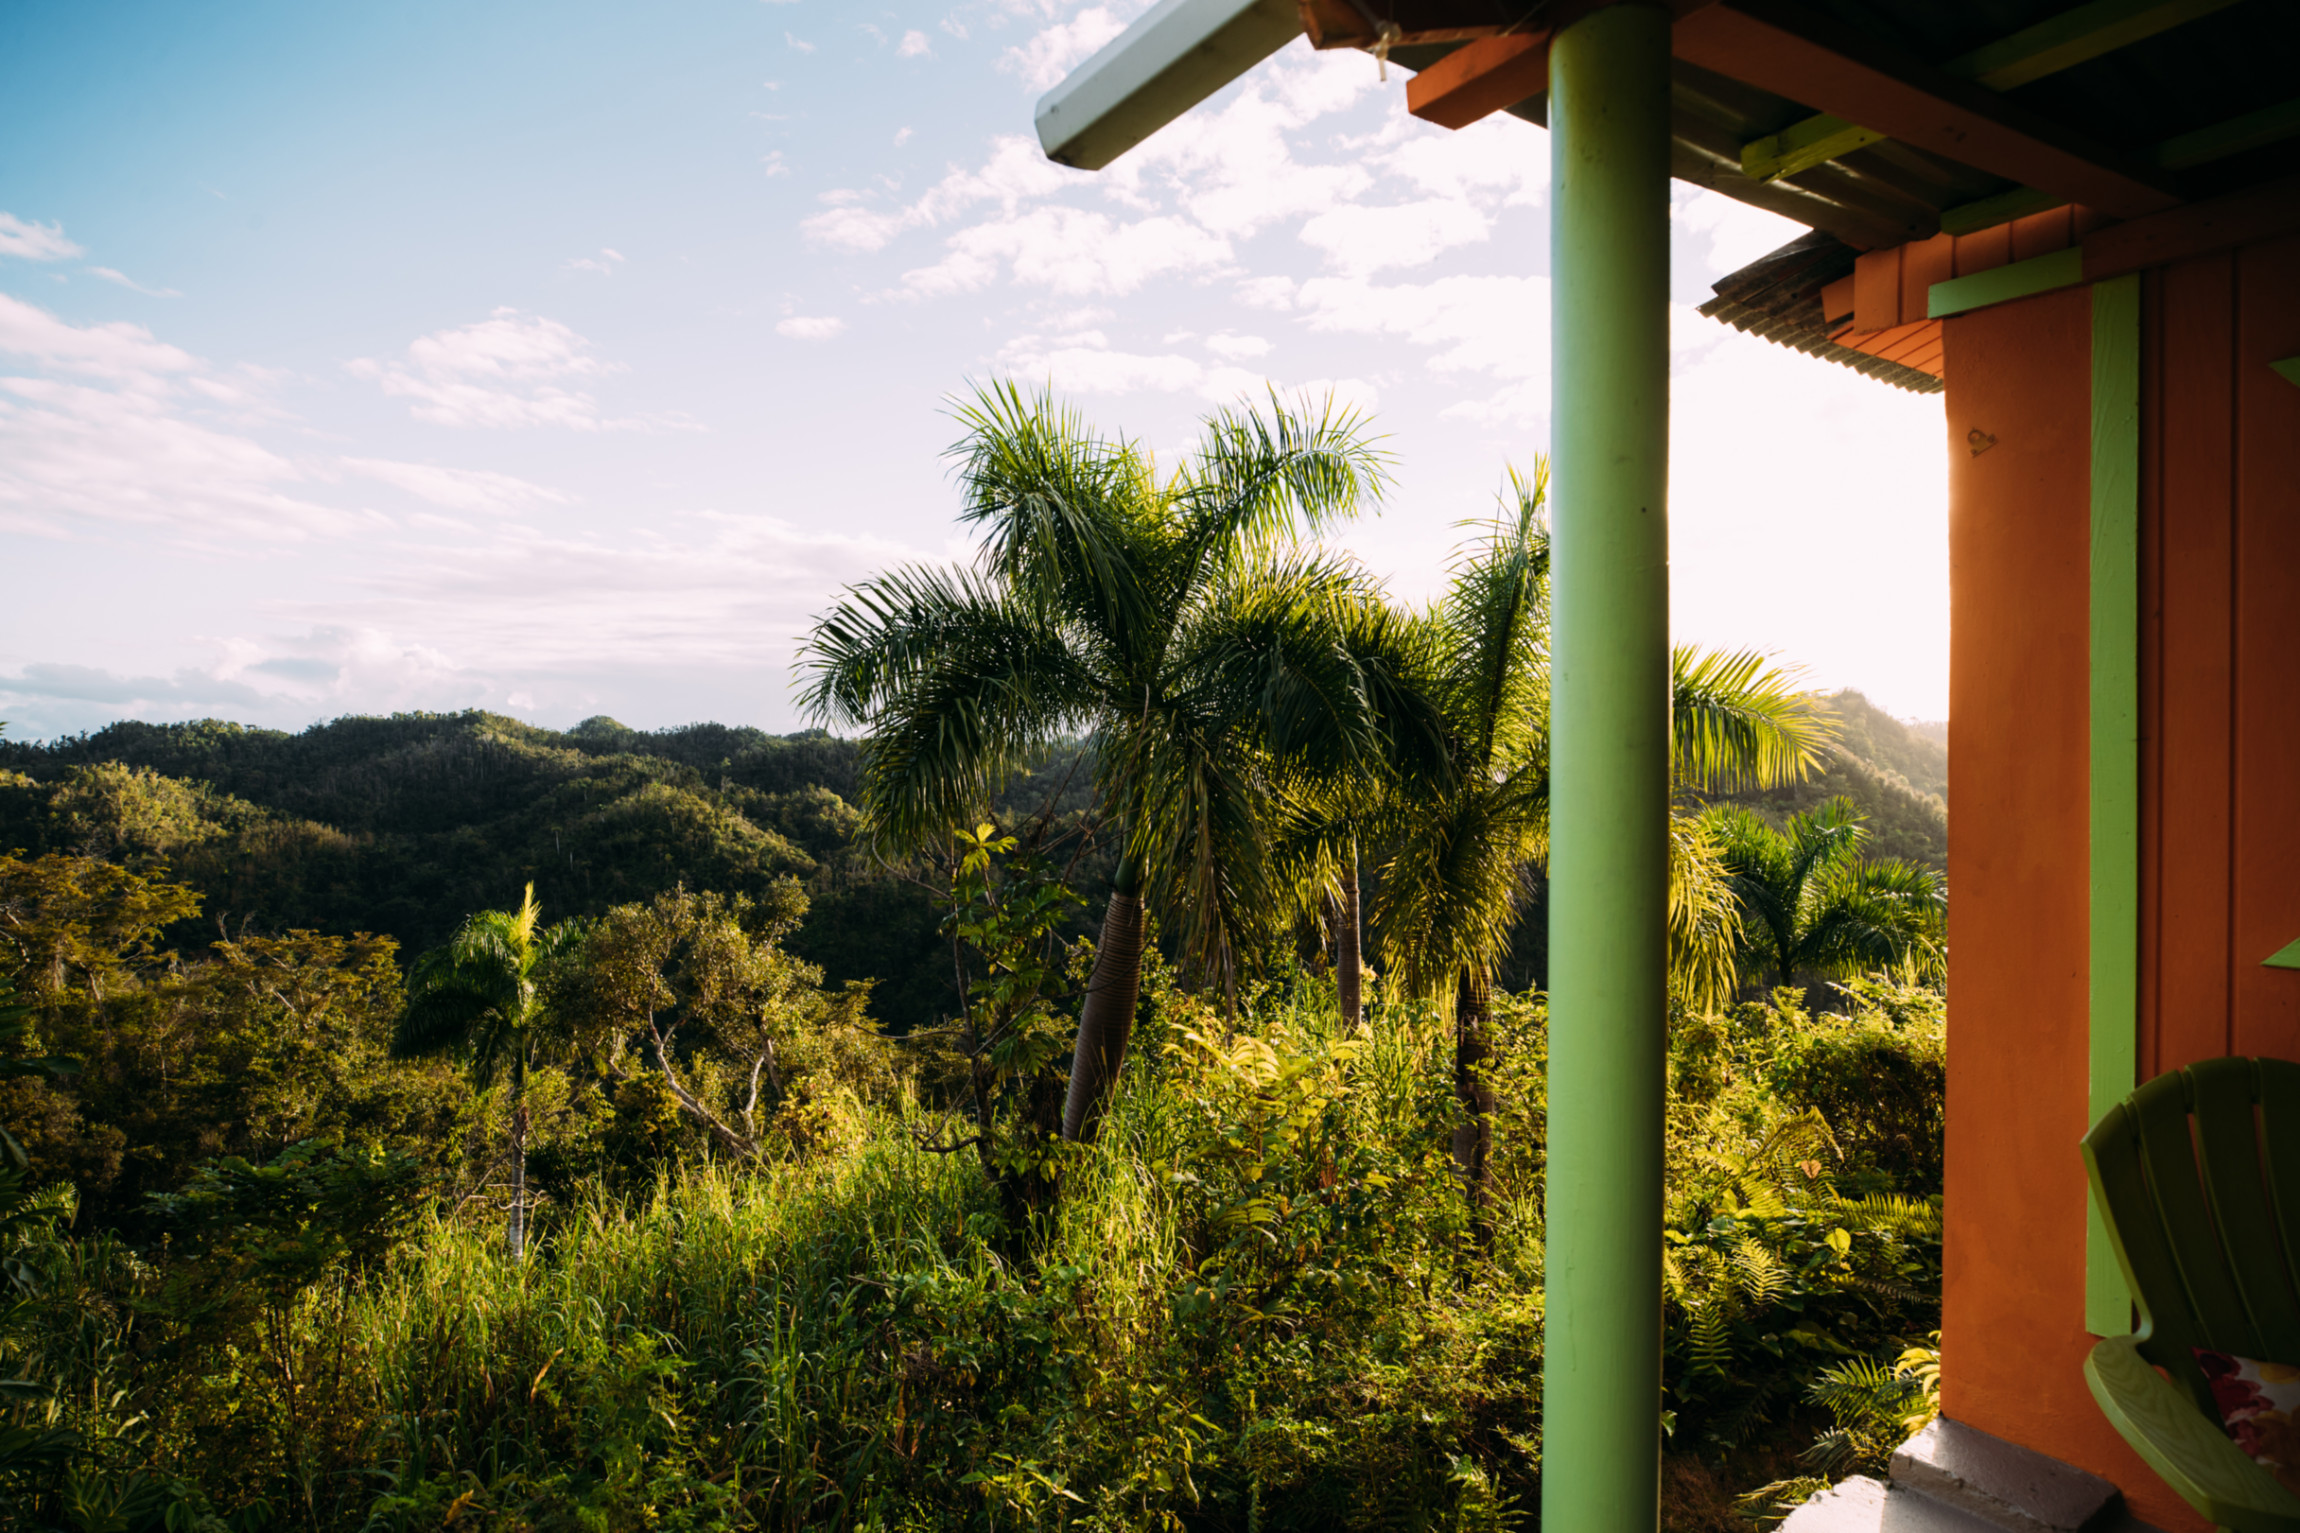 A panoramic view of lush foliage in Utuado.